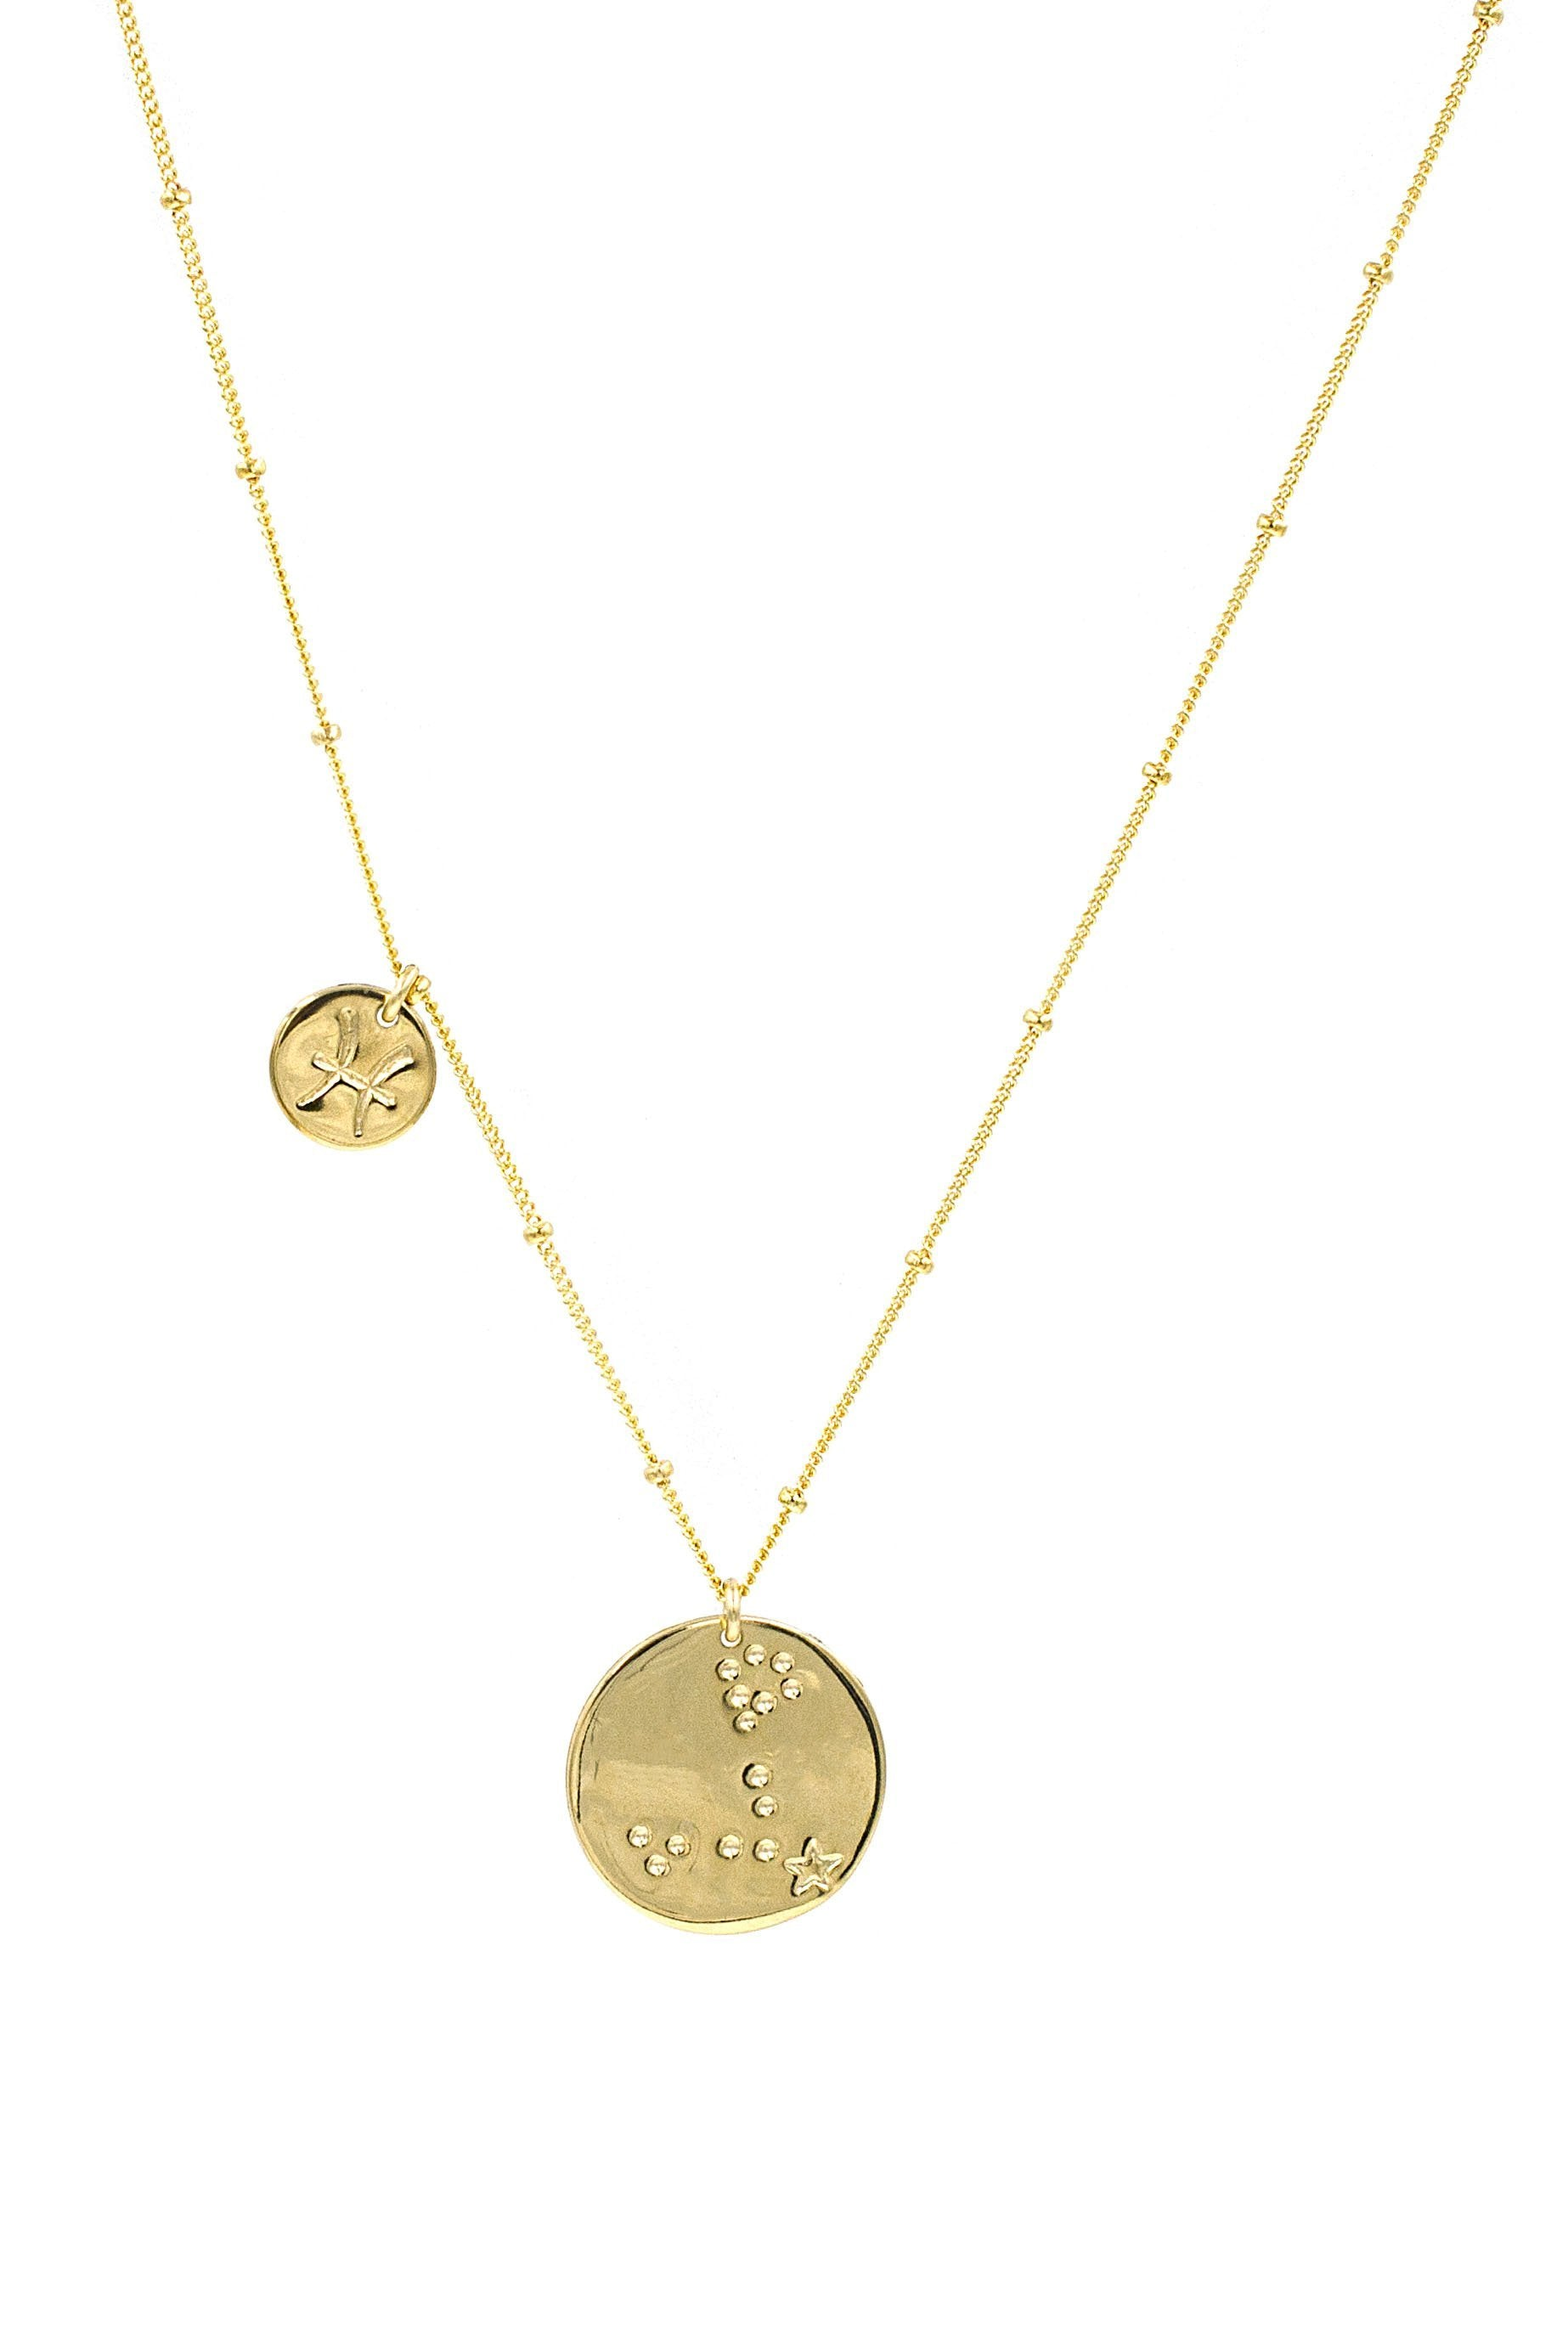 Paradigm Designs Cancer Constellation Necklace